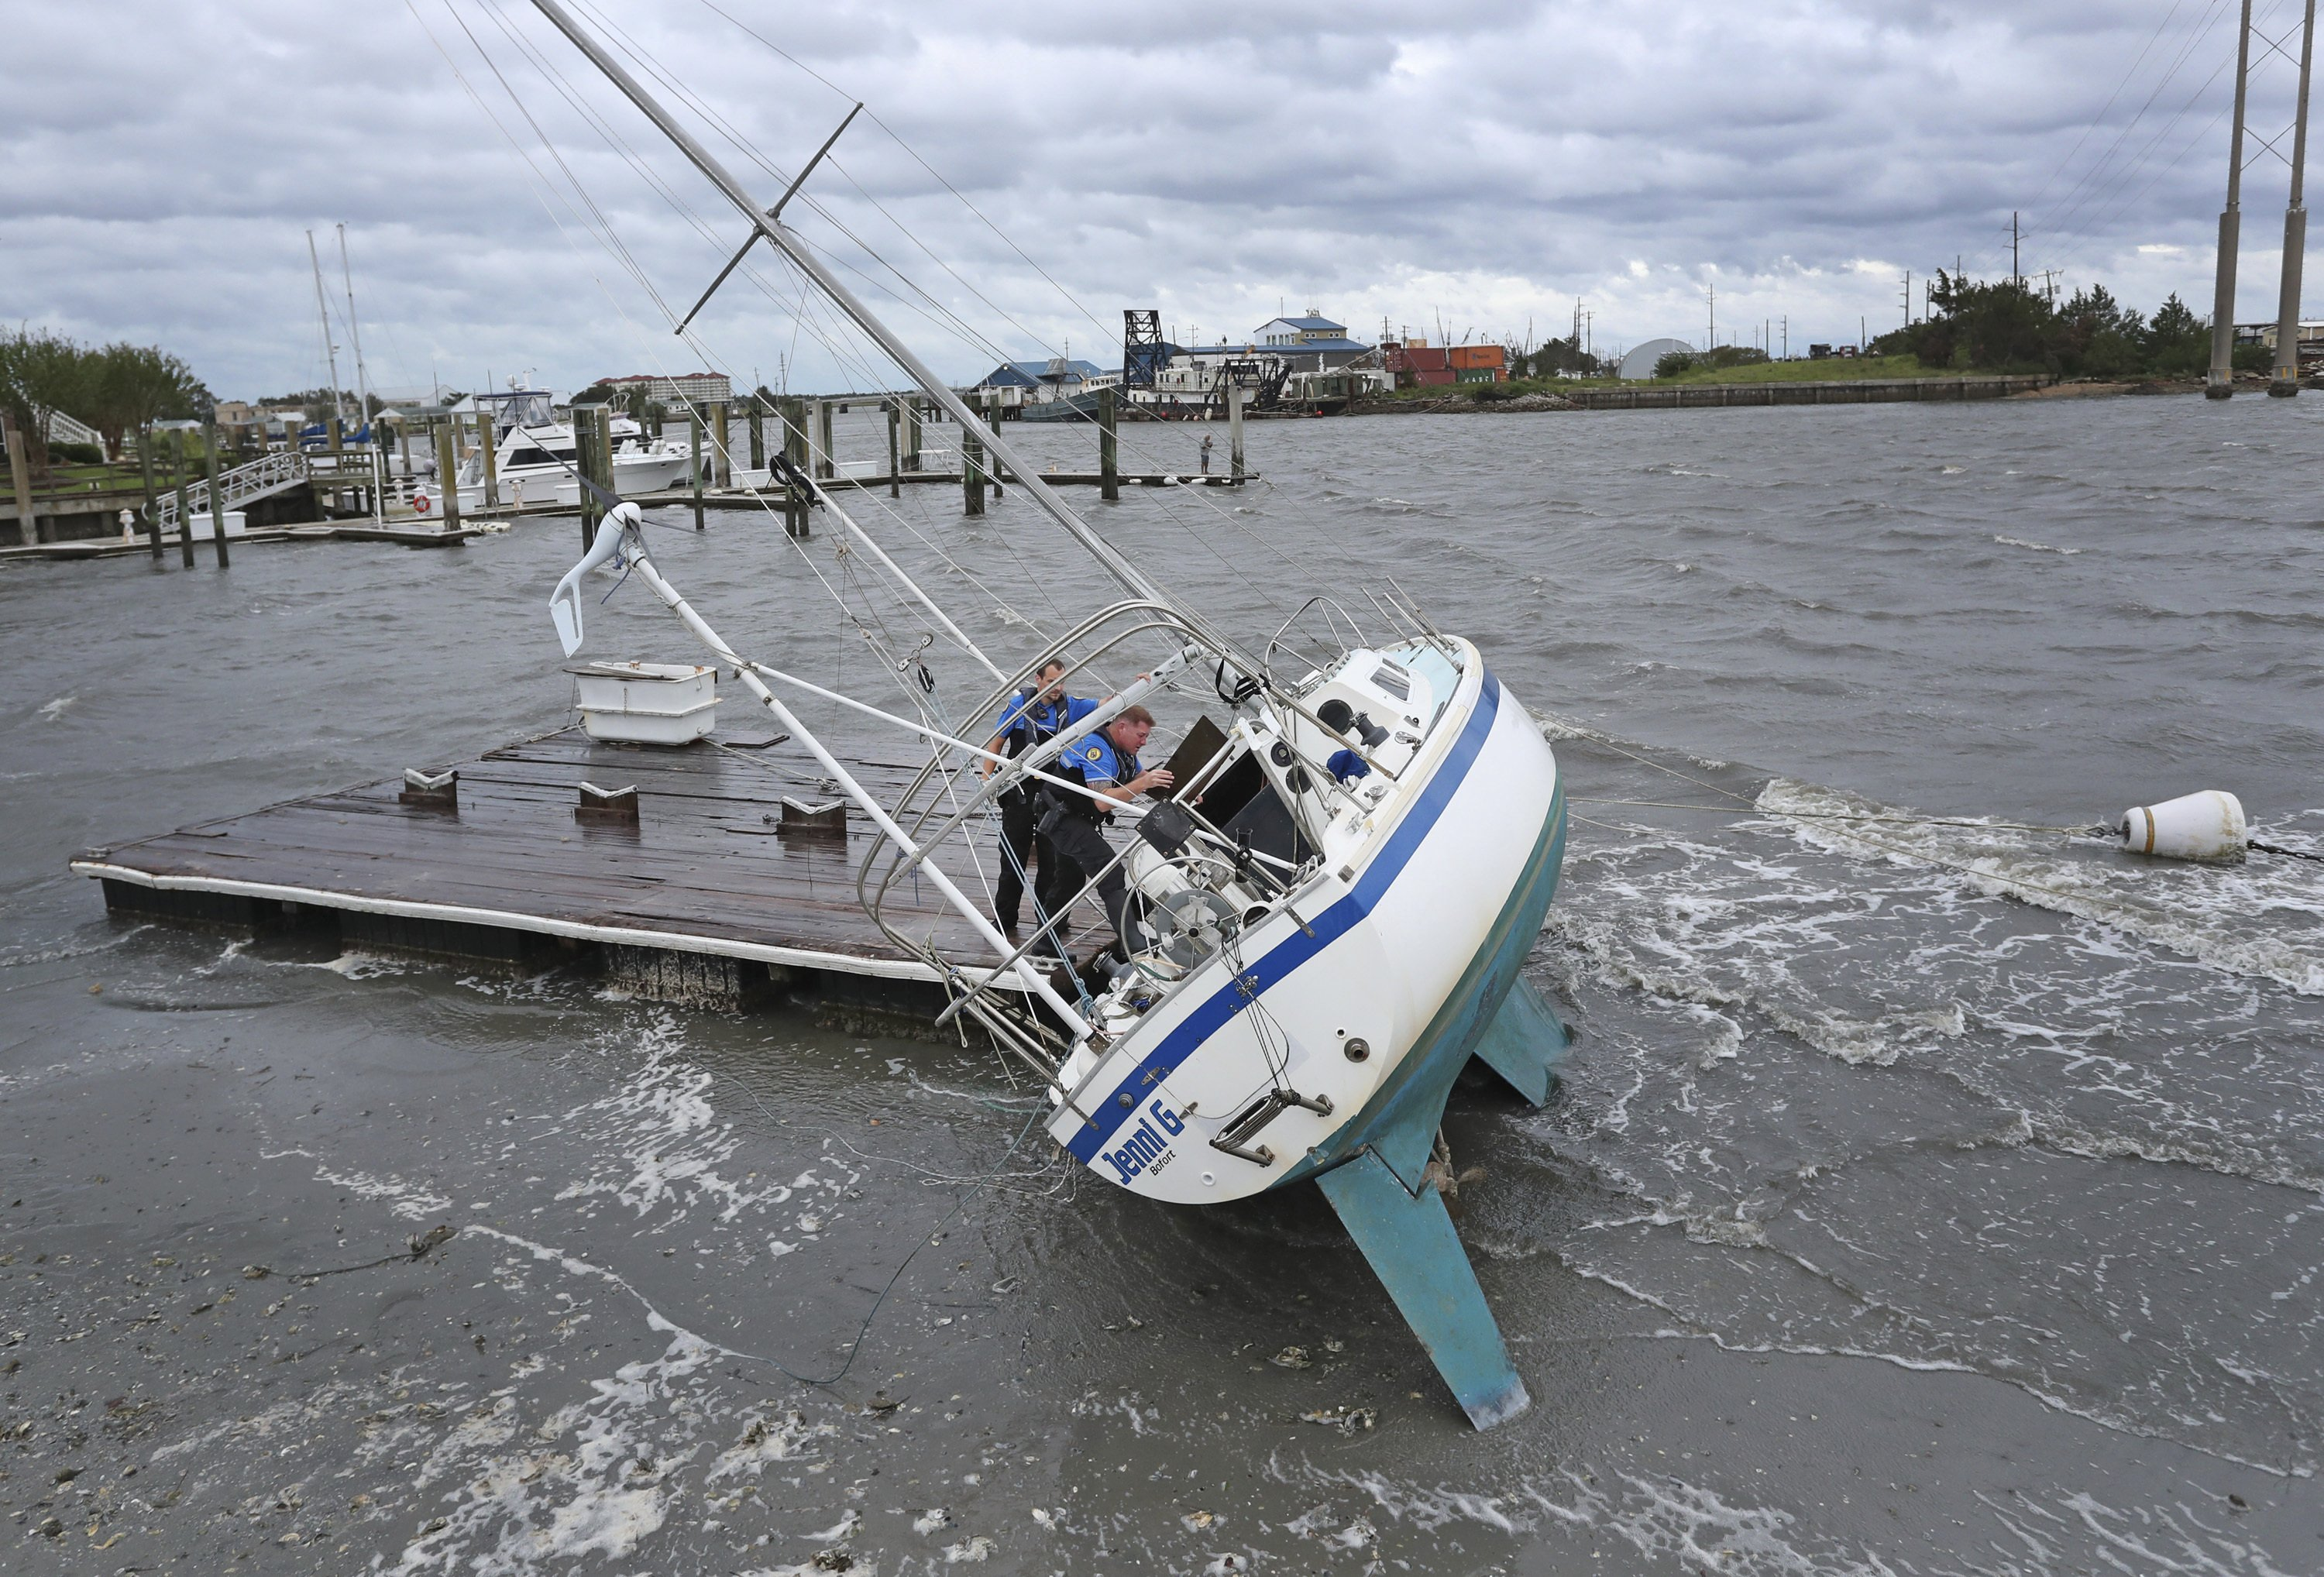 The Latest: Dutch navy ships in Bahamas hurricane aftermath